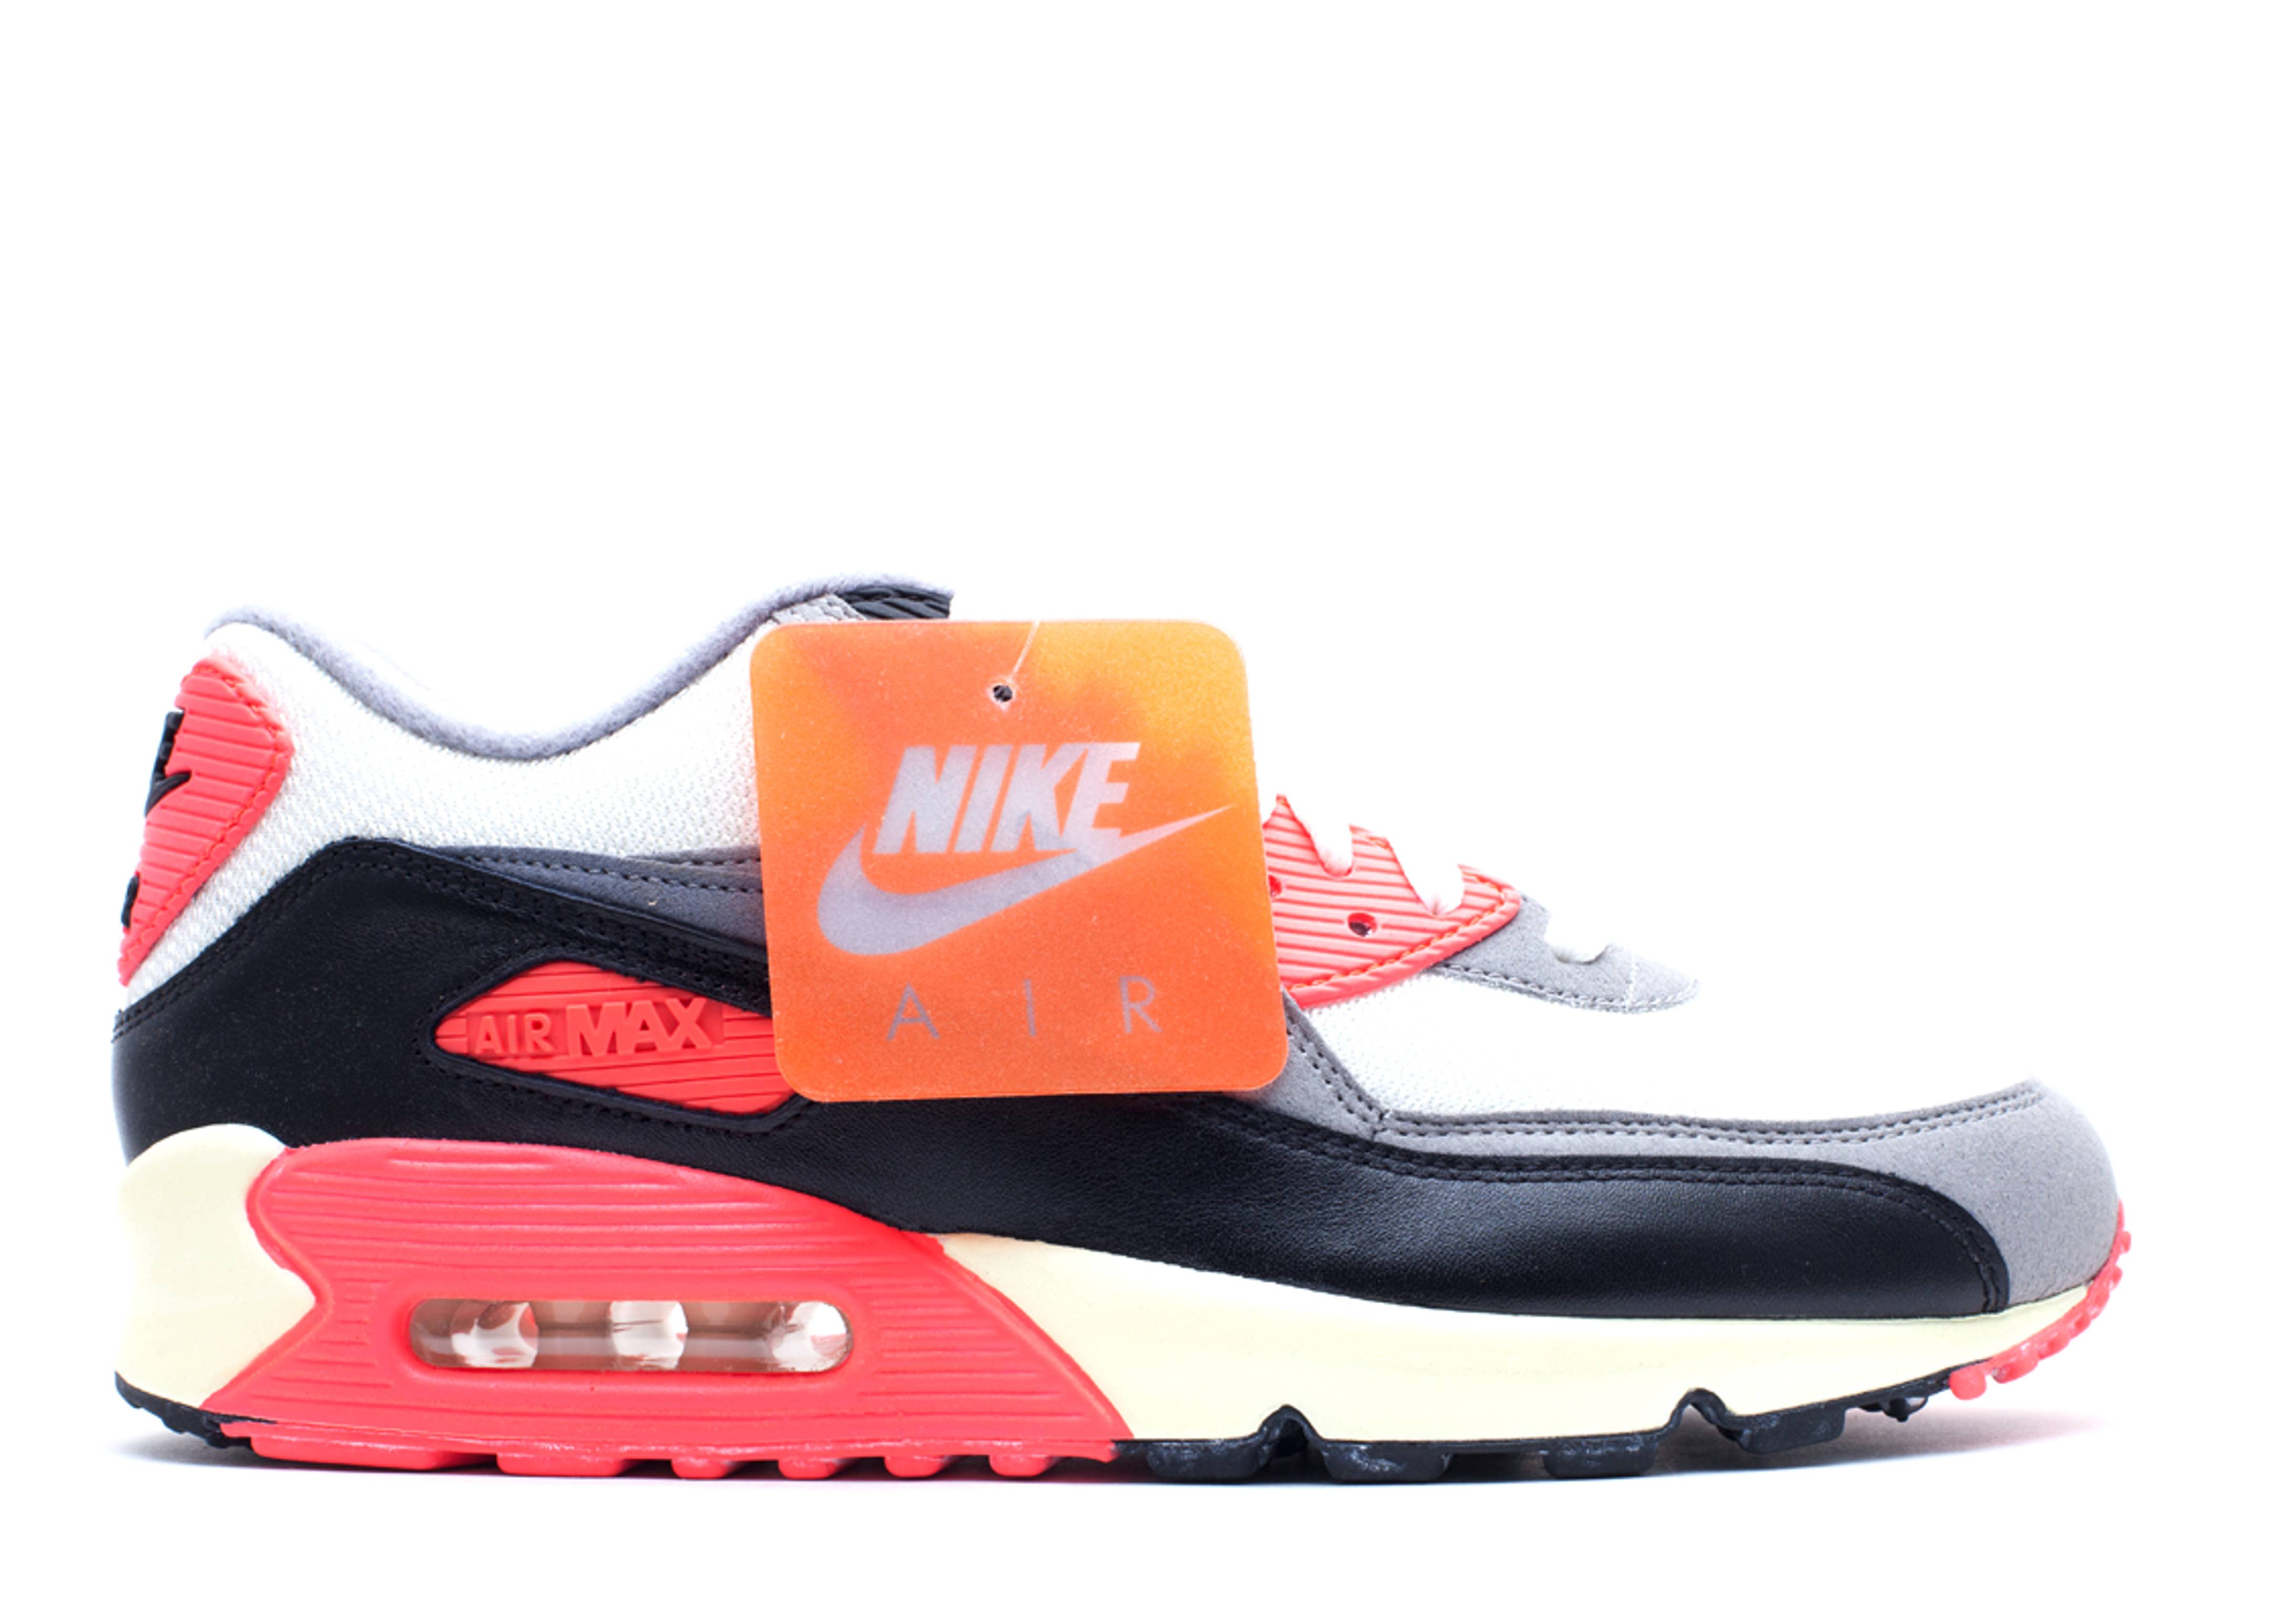 cheap air jordan shoes,cheap air max 90,cheap air max 87 shoes